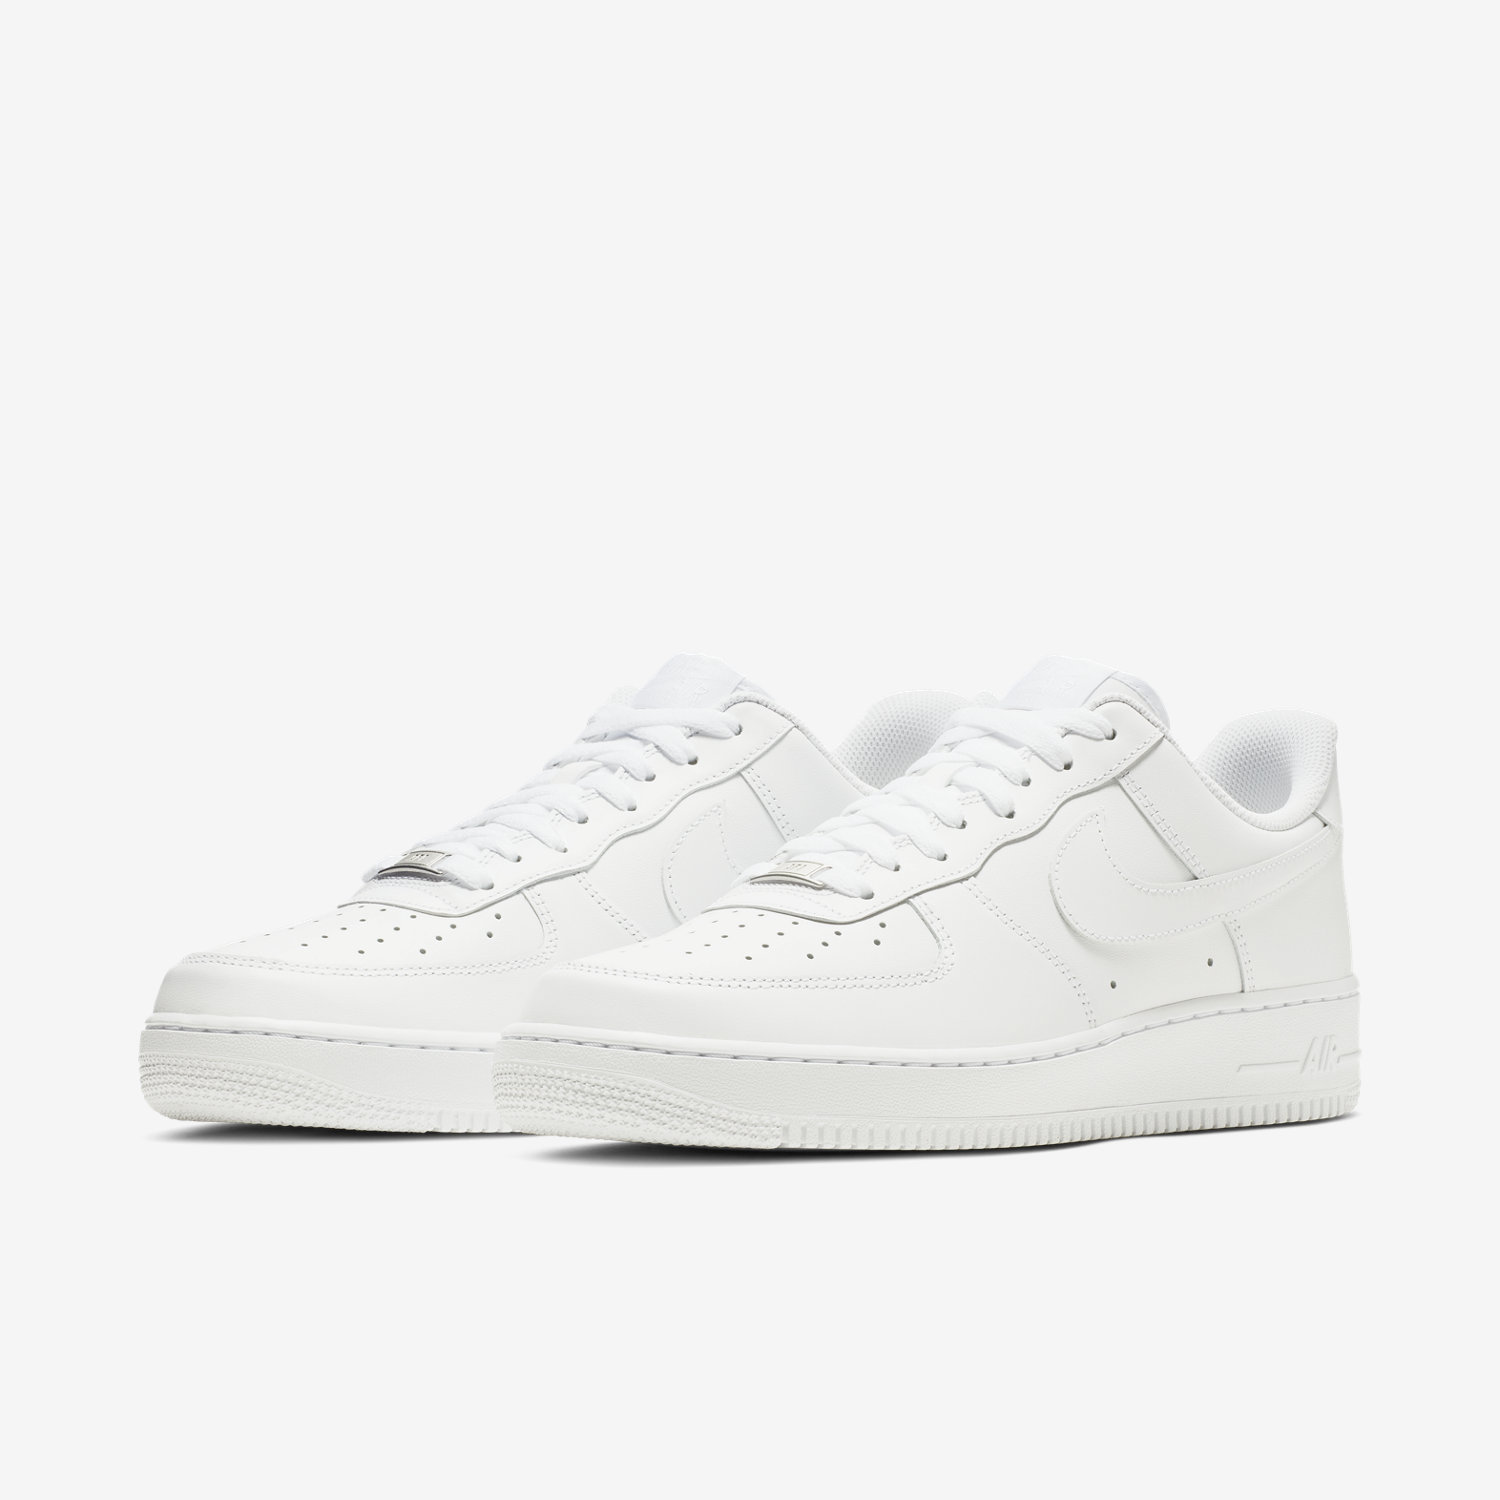 nike air force 1 07,chaussures nike air force 1 07 prm black